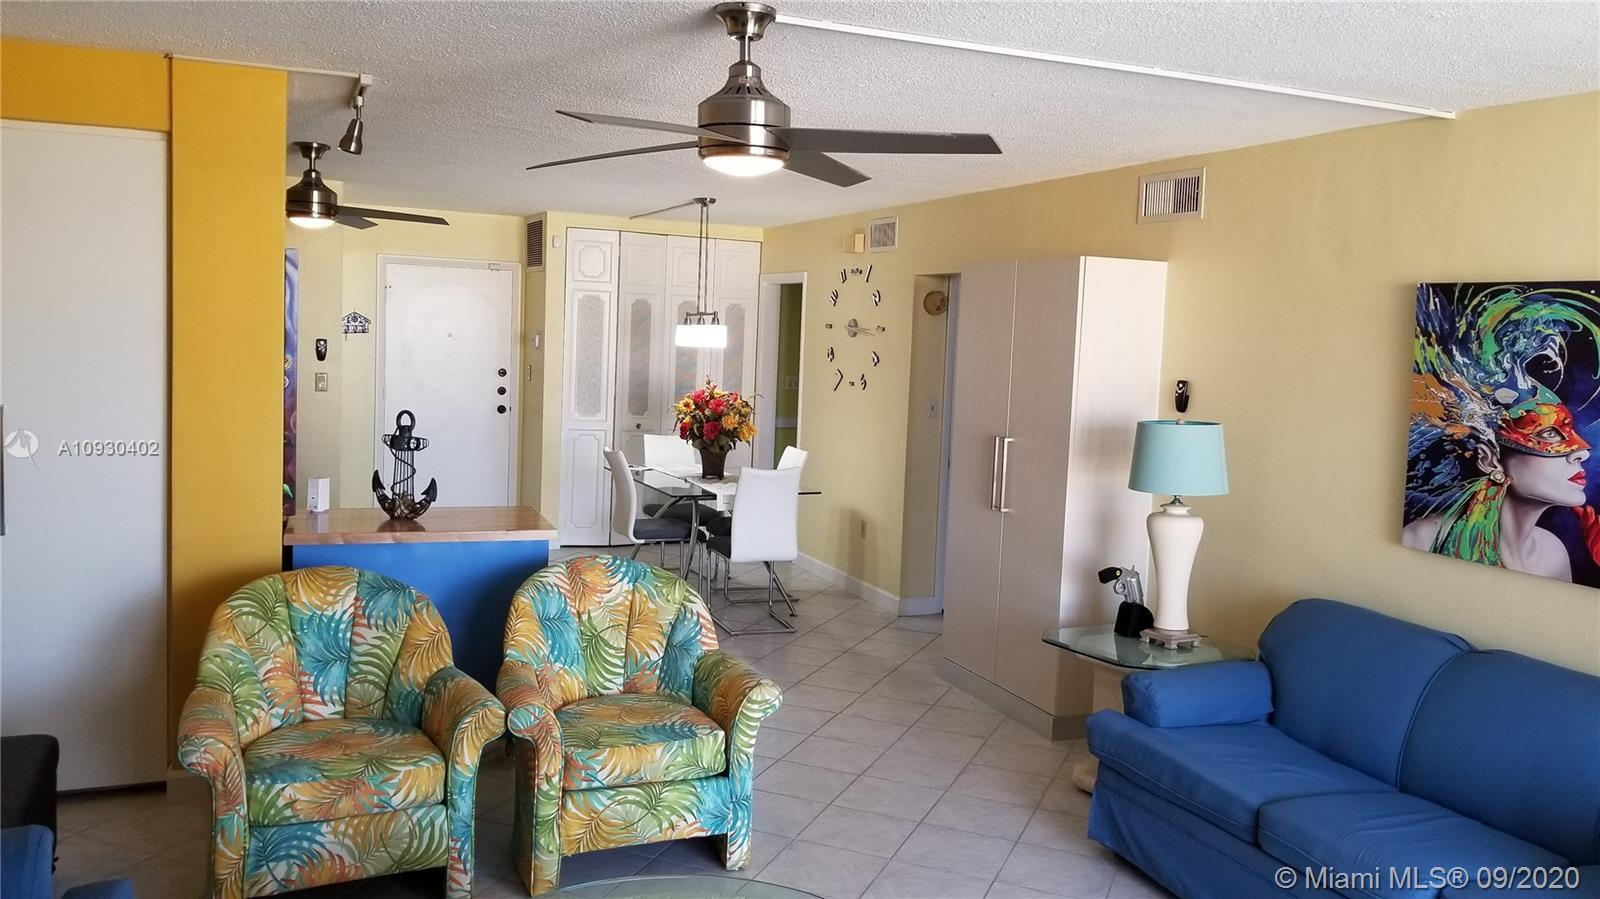 Beautiful and cozy apartment steps from the famous Hollywood Broadwalk, restaurants, and the beach.